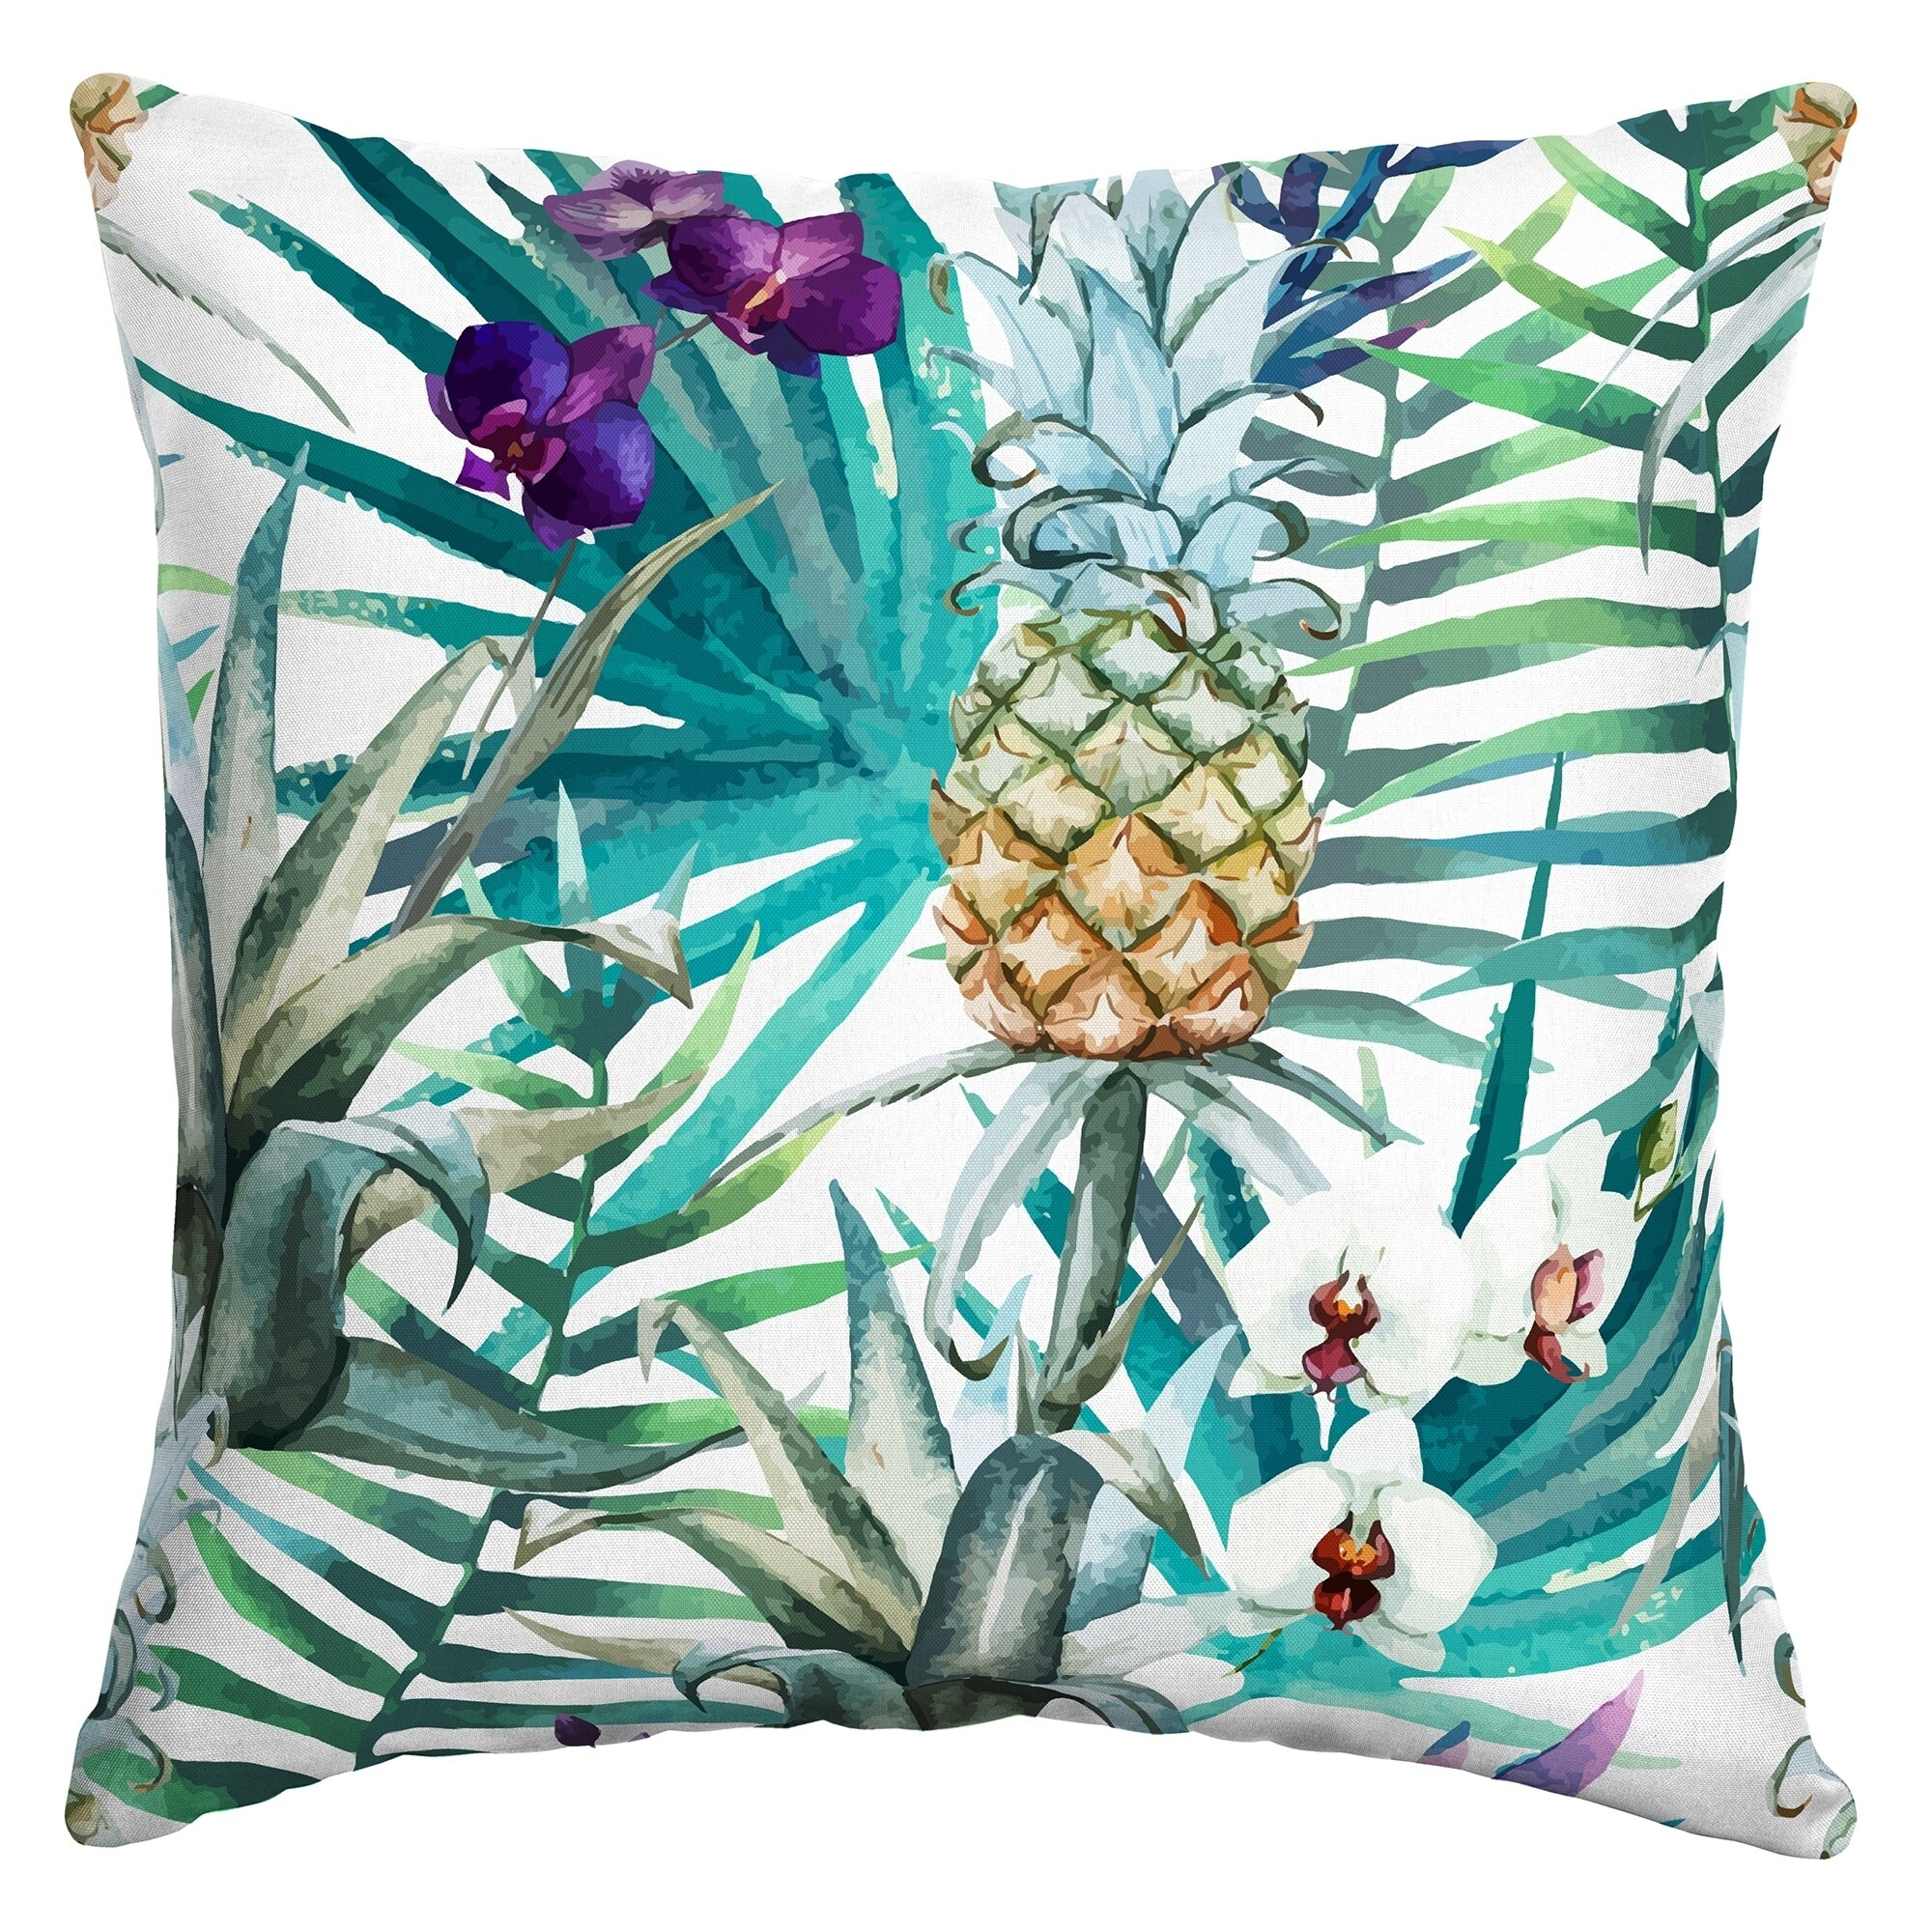 Arden Selections Ameera Tropical Outdoor Square Pillow 70145030064